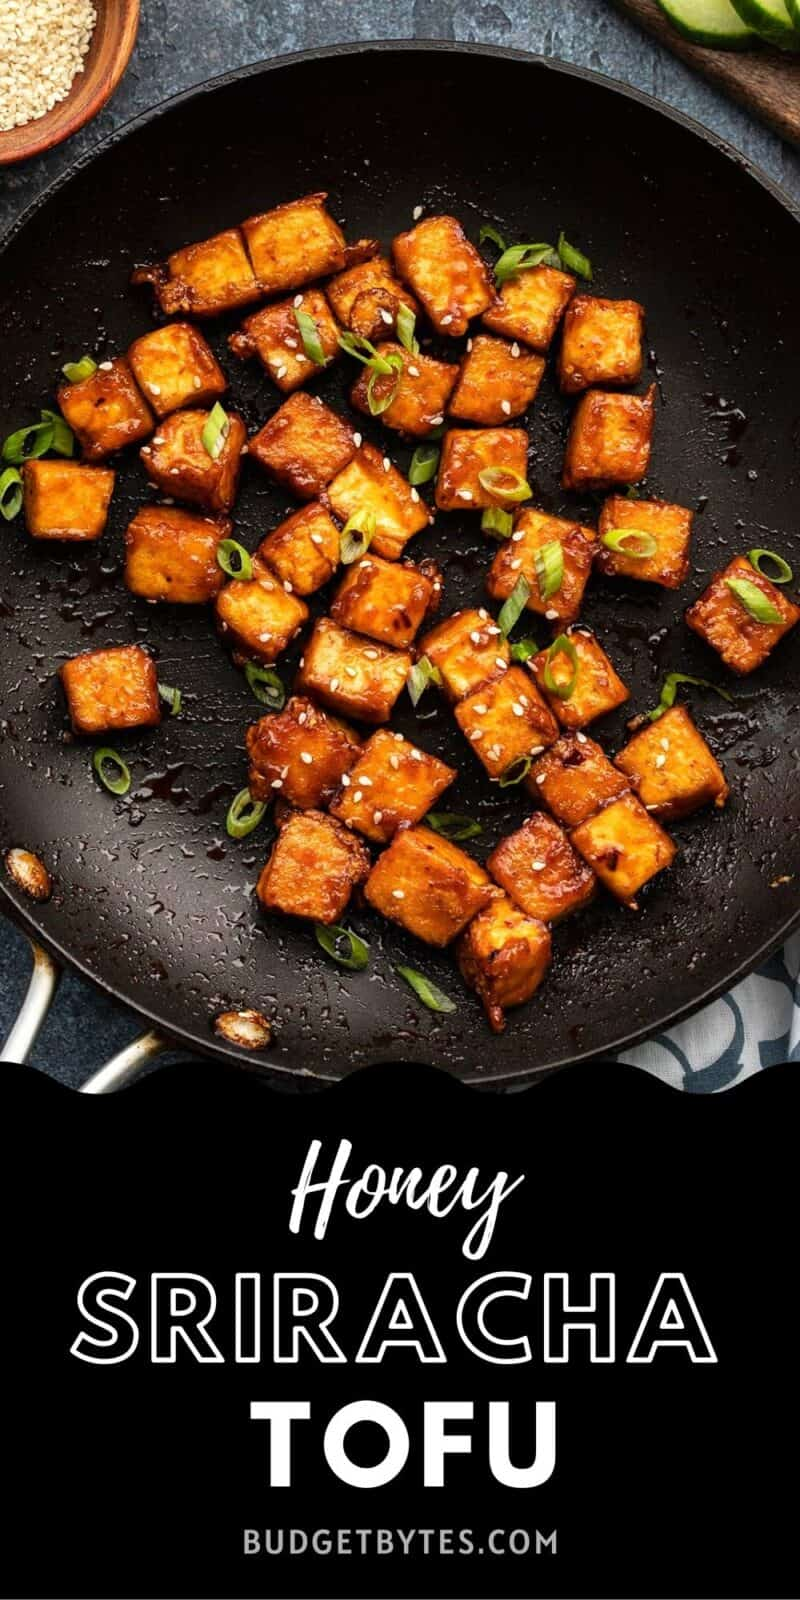 honey sriracha tofu in a skillet, title text at the bottom